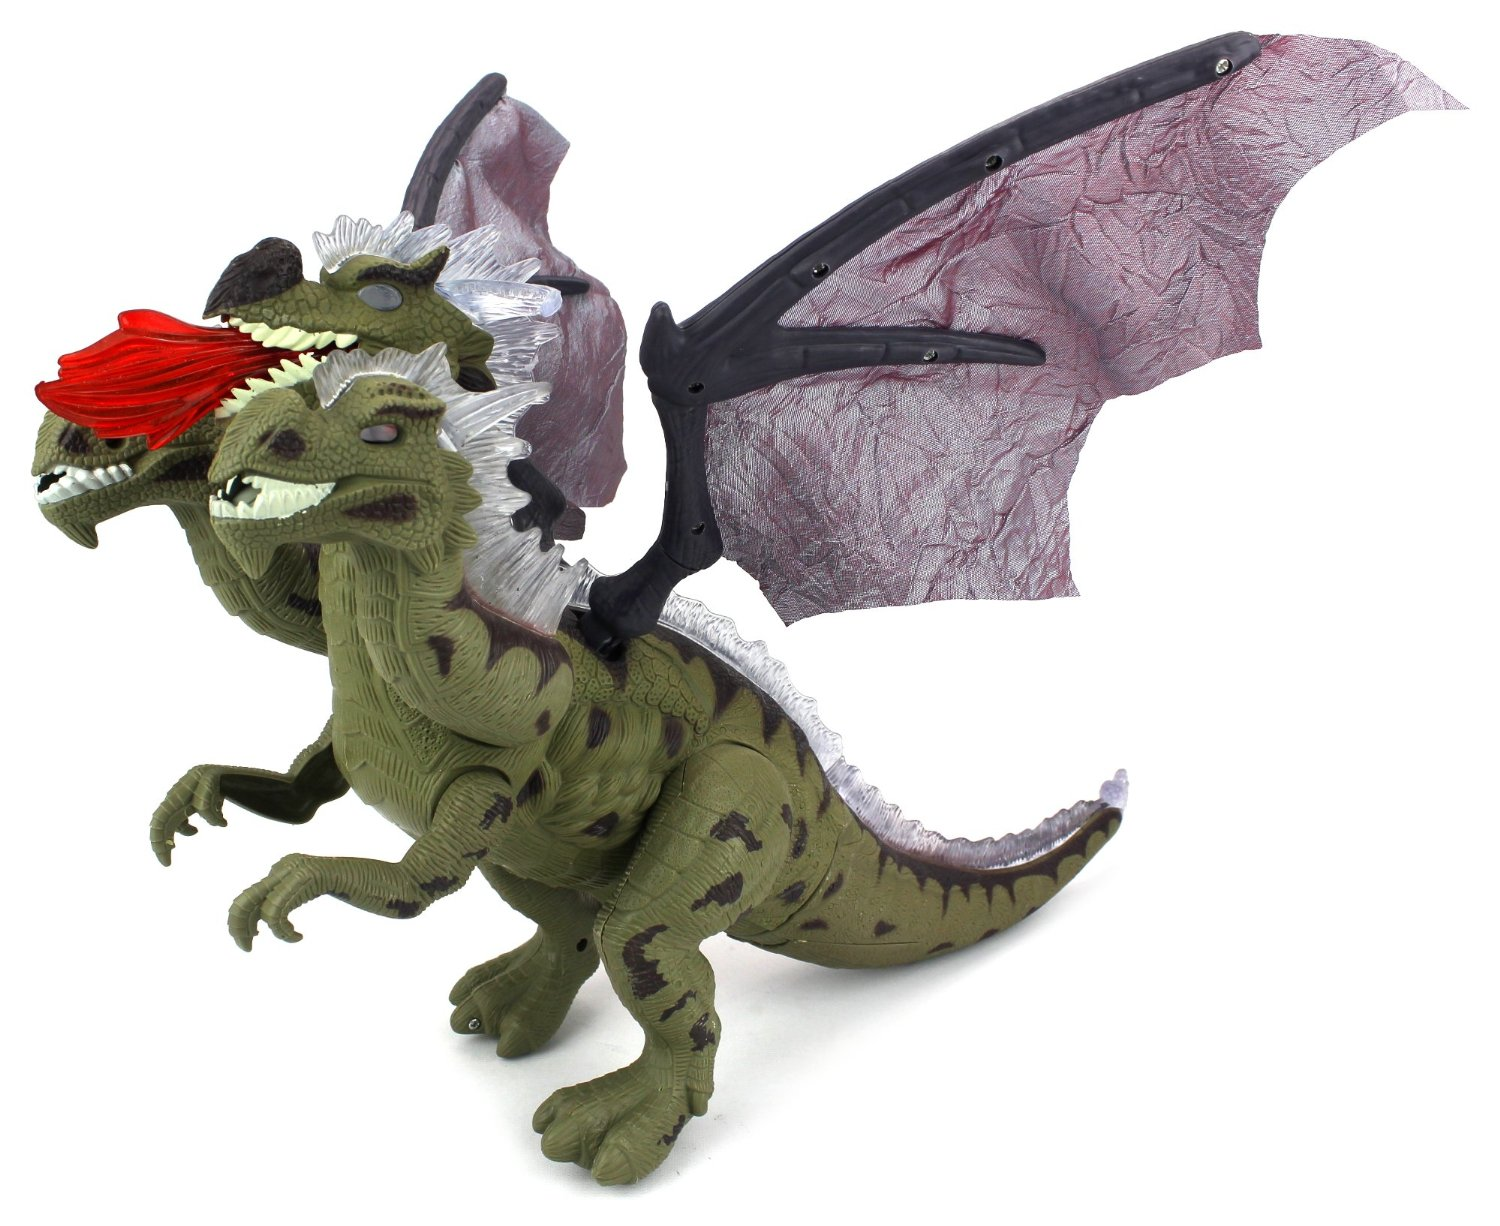 Dino Kingdom Three Headed Dragon Battery Operated Walking Toy Dinosaur Figure w  Realistic Movement, Lights... by Velocity Toys